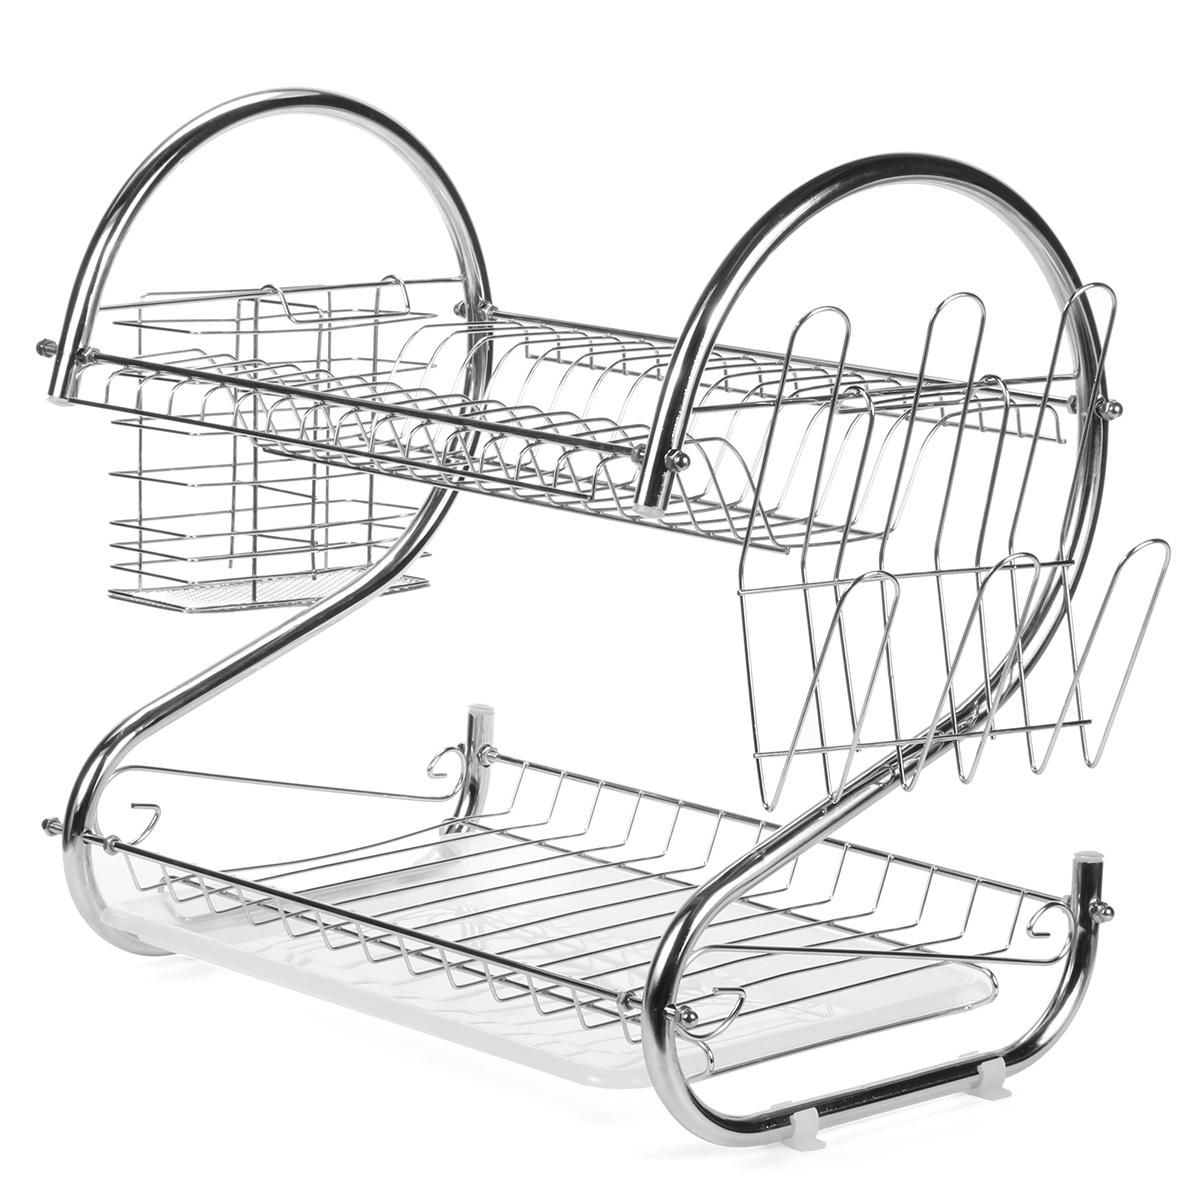 Multifunction 2 Tier Kitchen Dish Cutlery Drainer Rack Drip Tray Plate Holder Drain Shelf Hardware Accessories From Tools Industrial Scientific On Banggood Drip Tray Shelf Hardware Kitchen Dishes